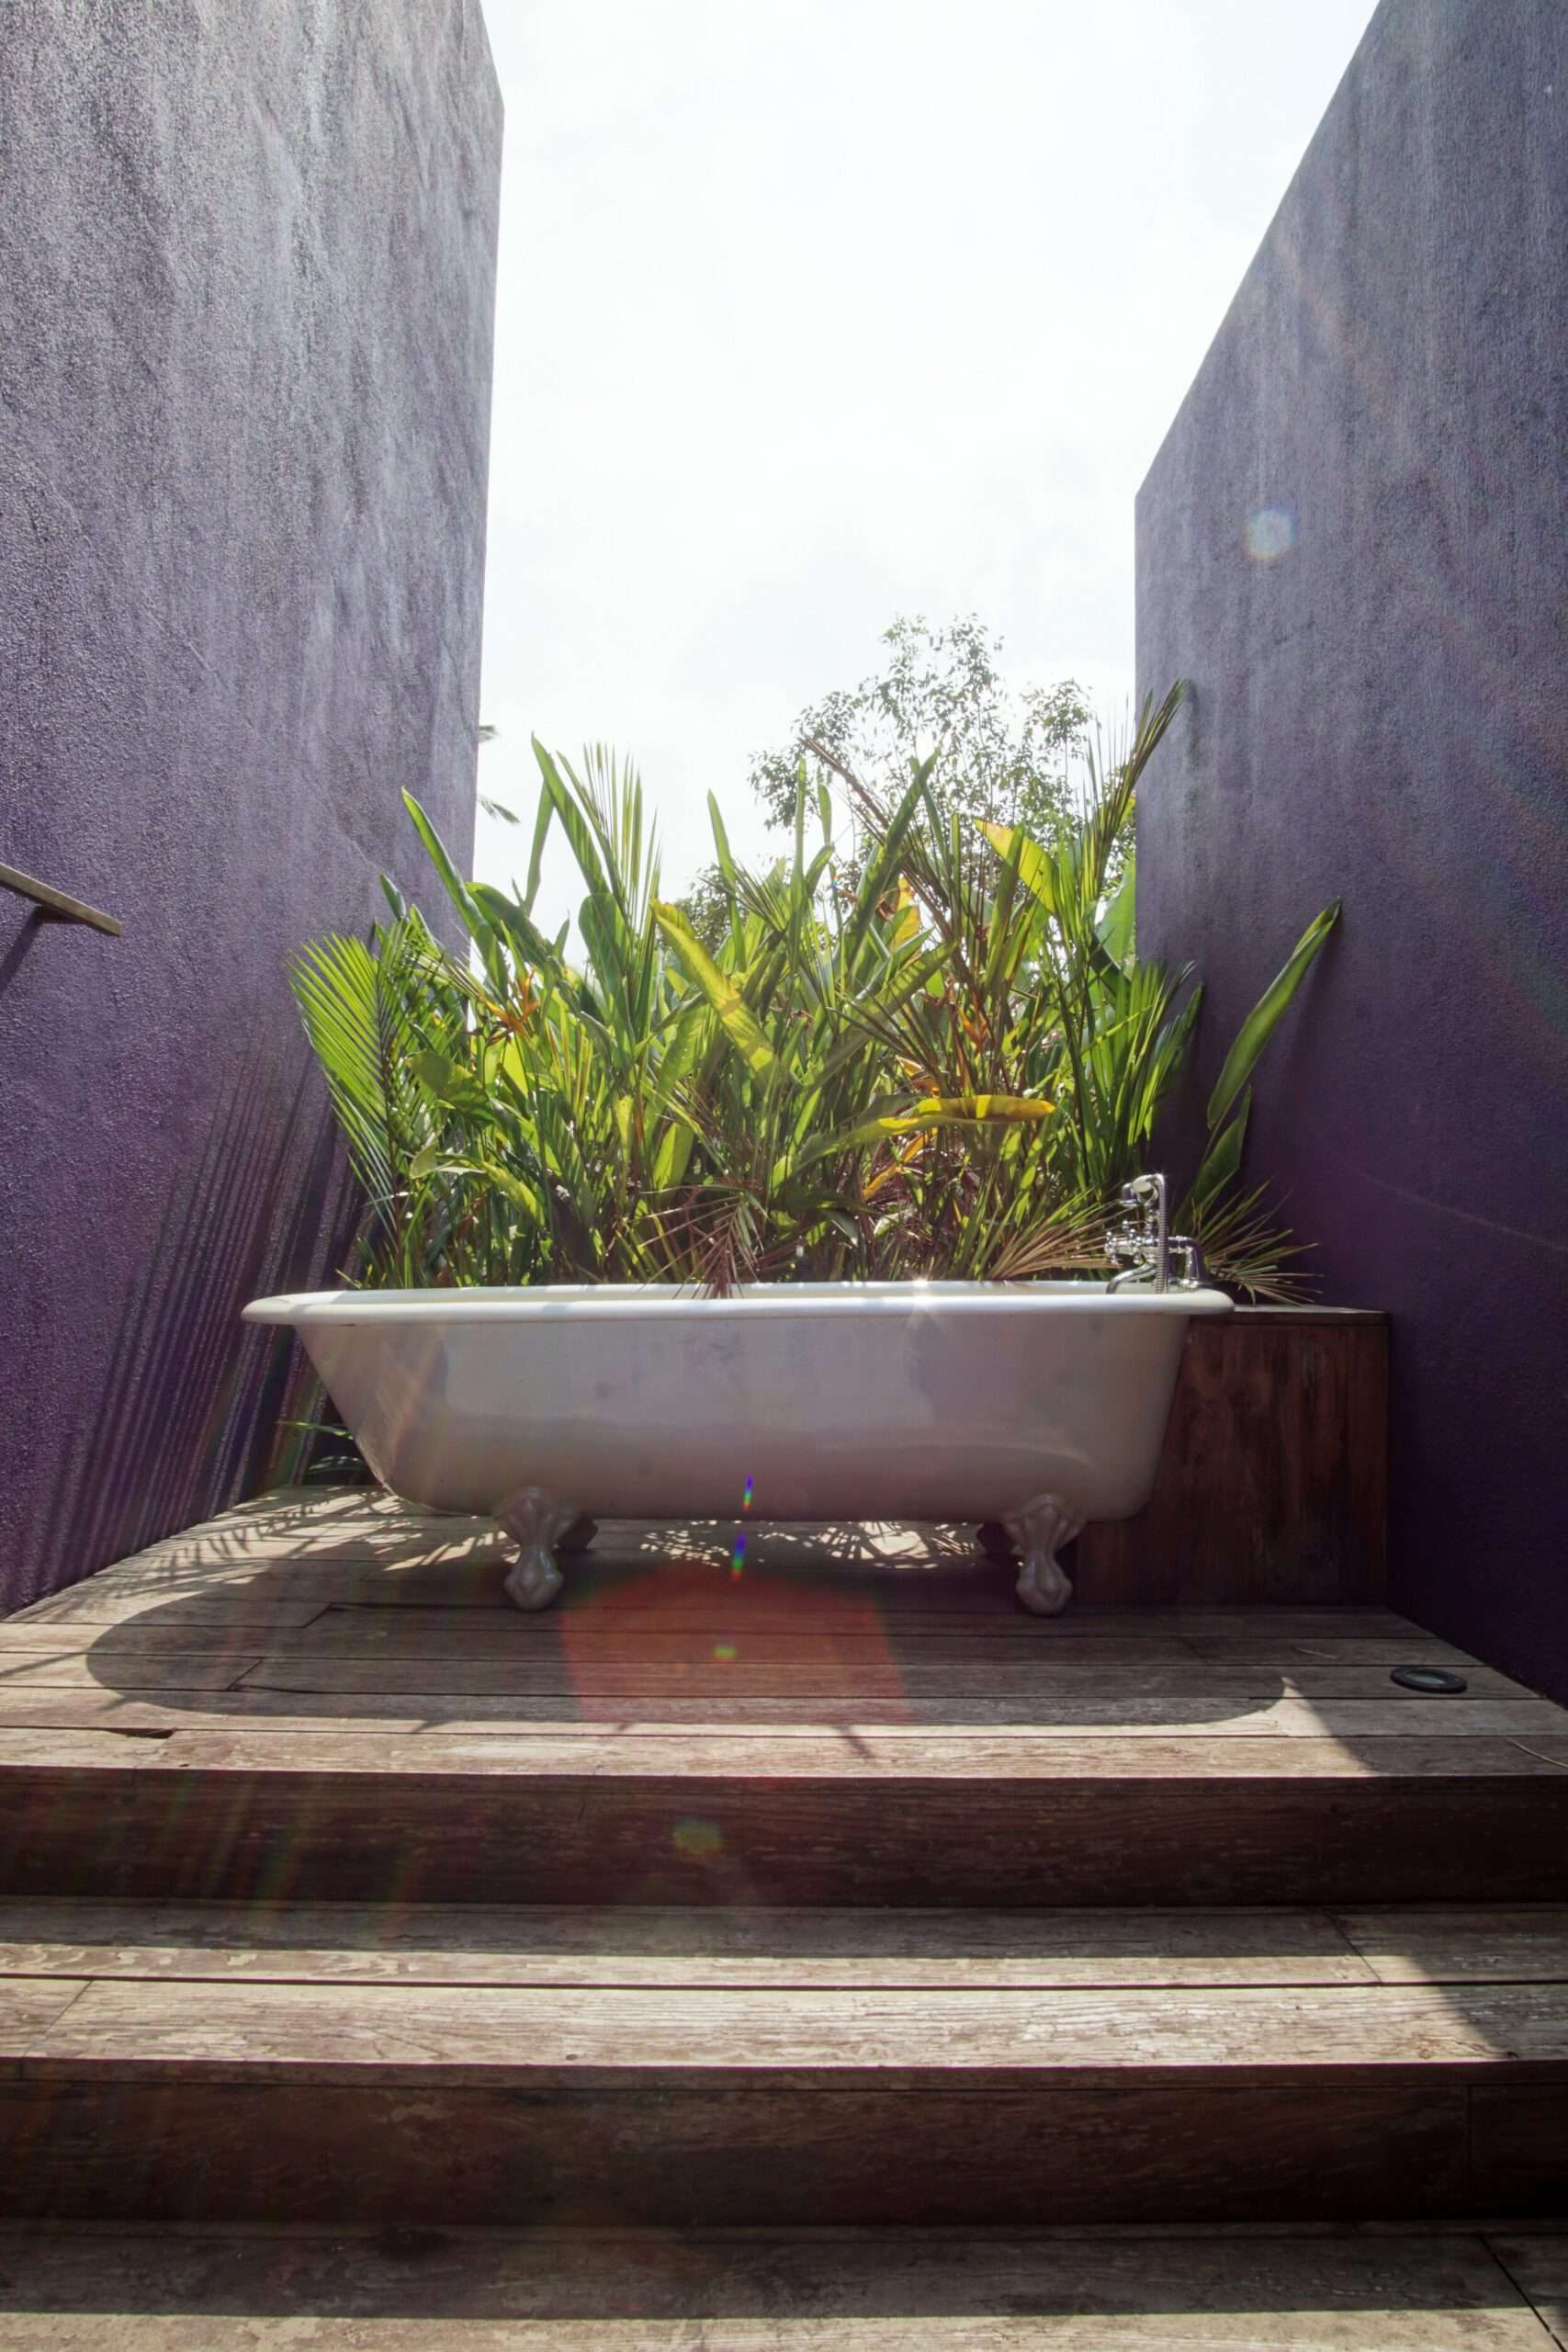 a white freestanding bathtub outside, surrounded by plants, with purple walls either side